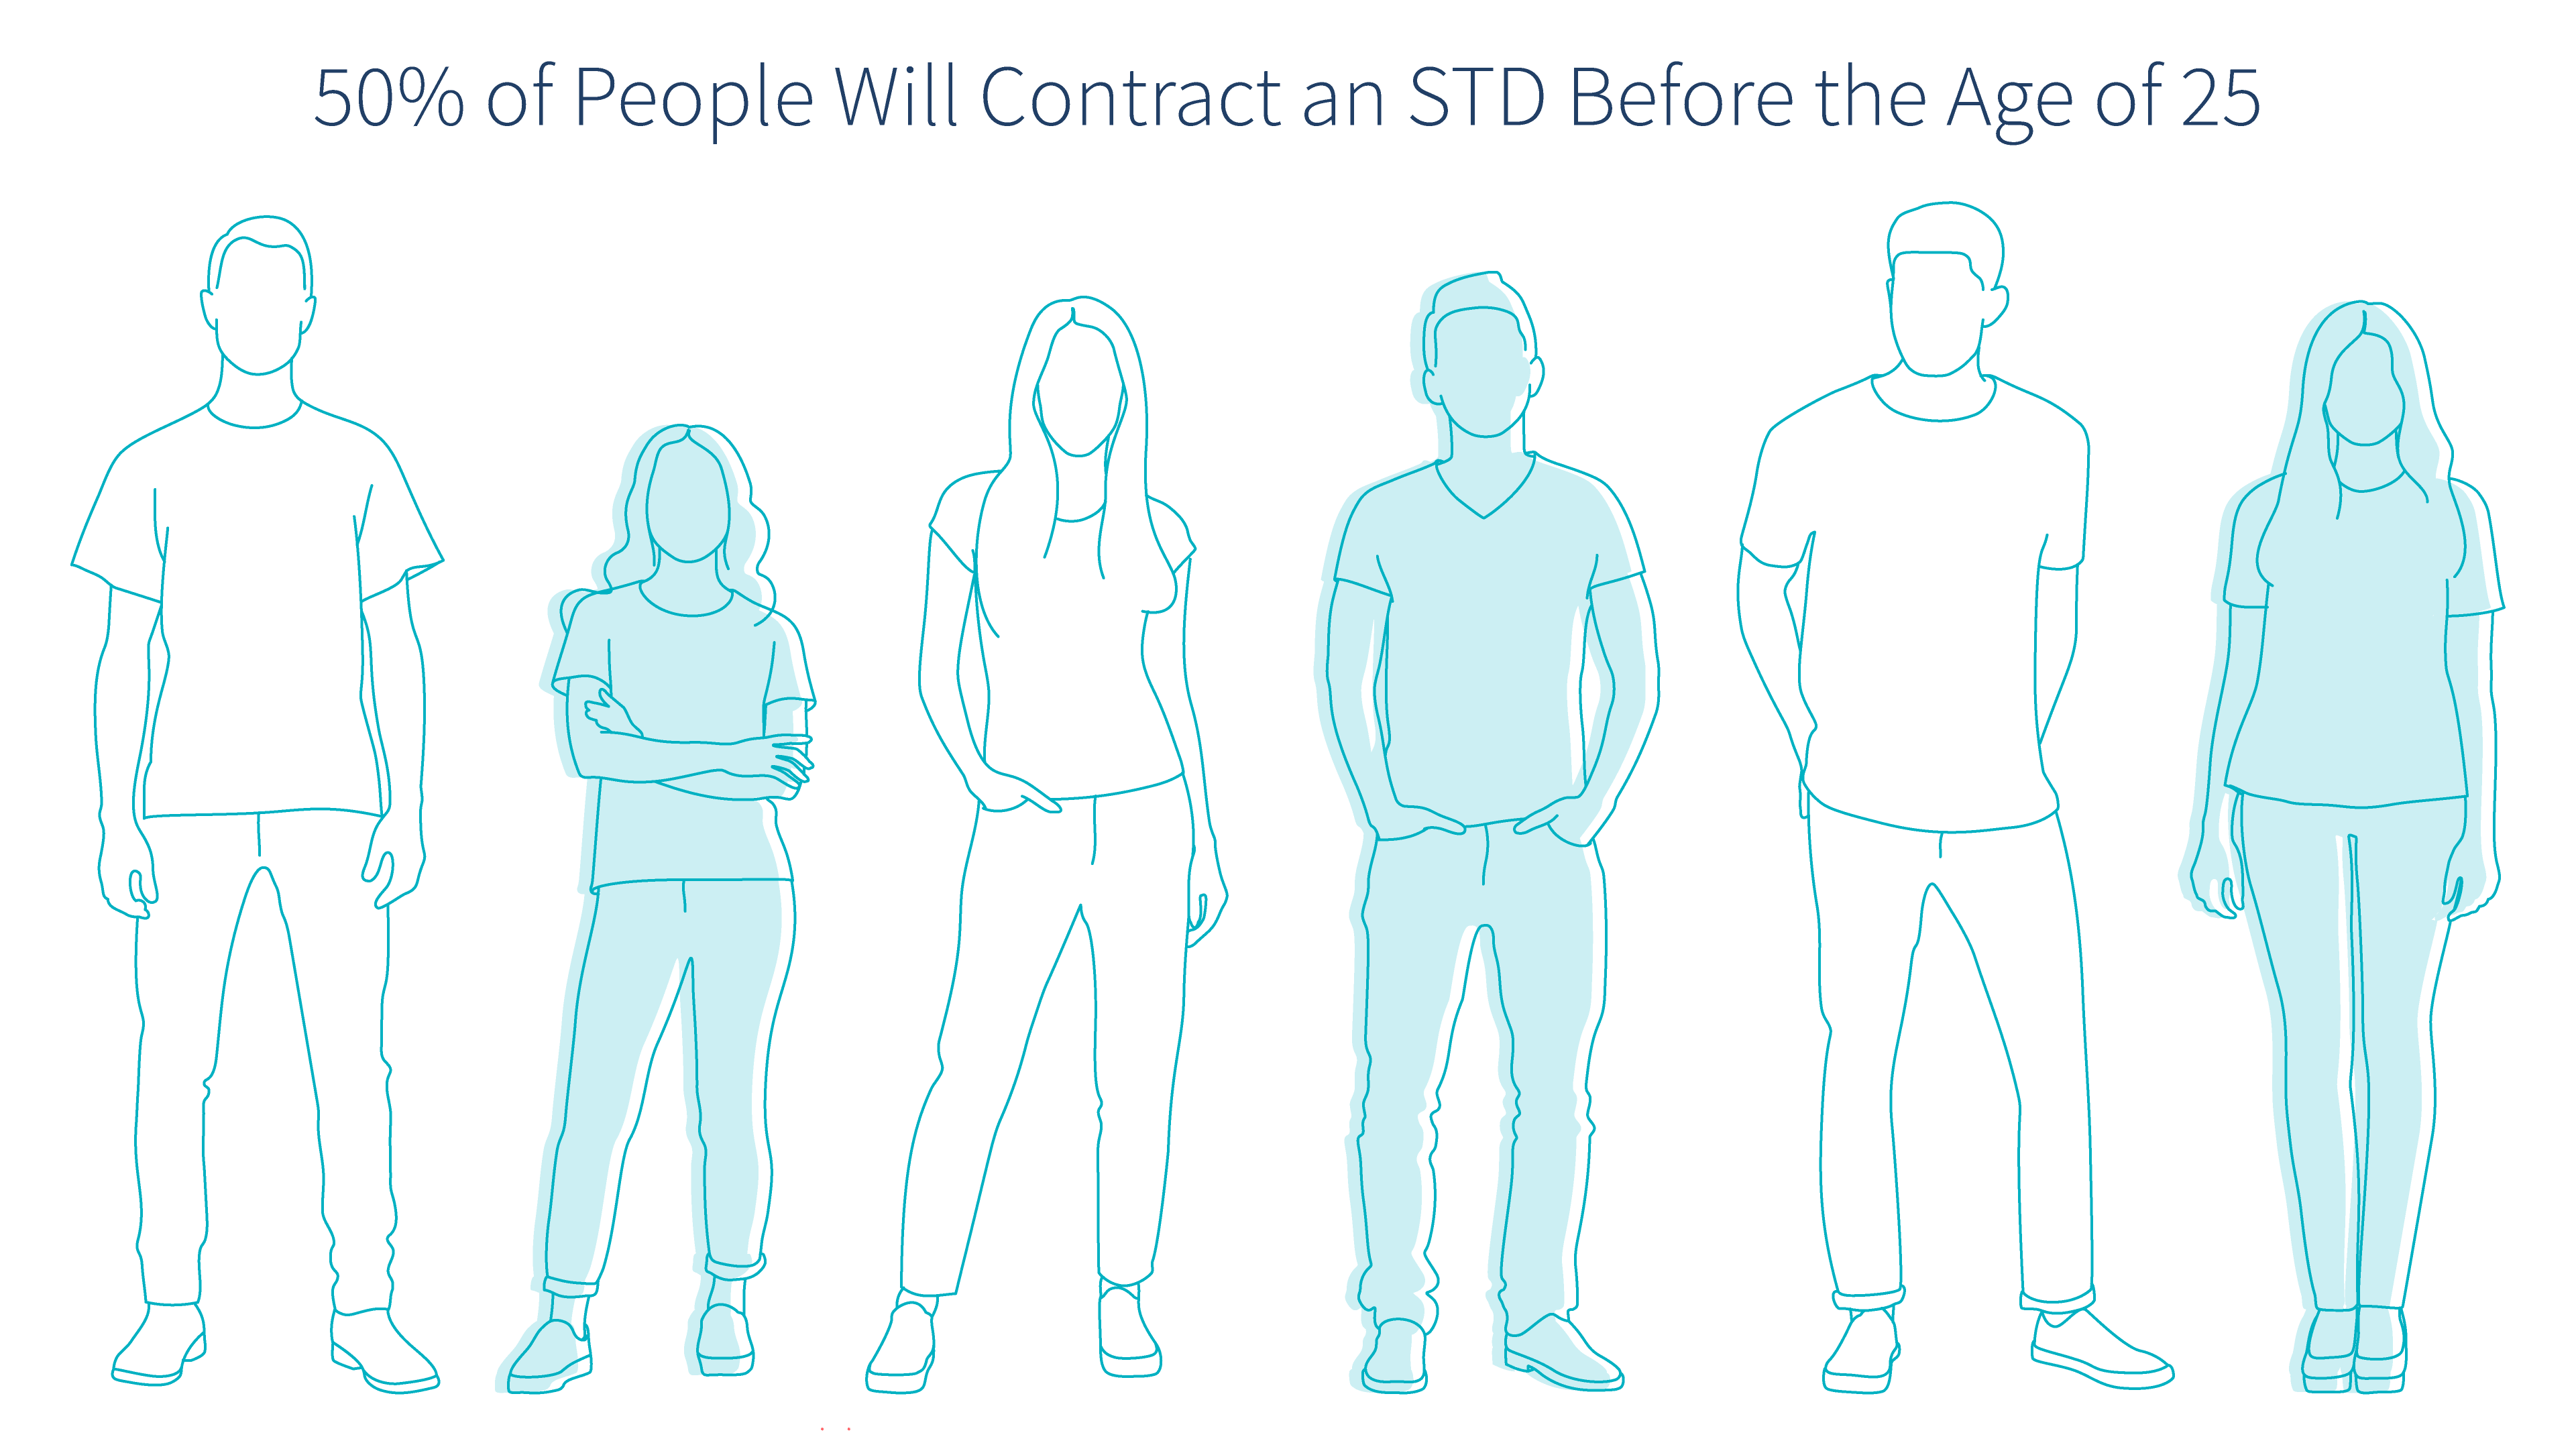 50-percent-of-people-will-have-an-std-before-the-age-of-25-illustration